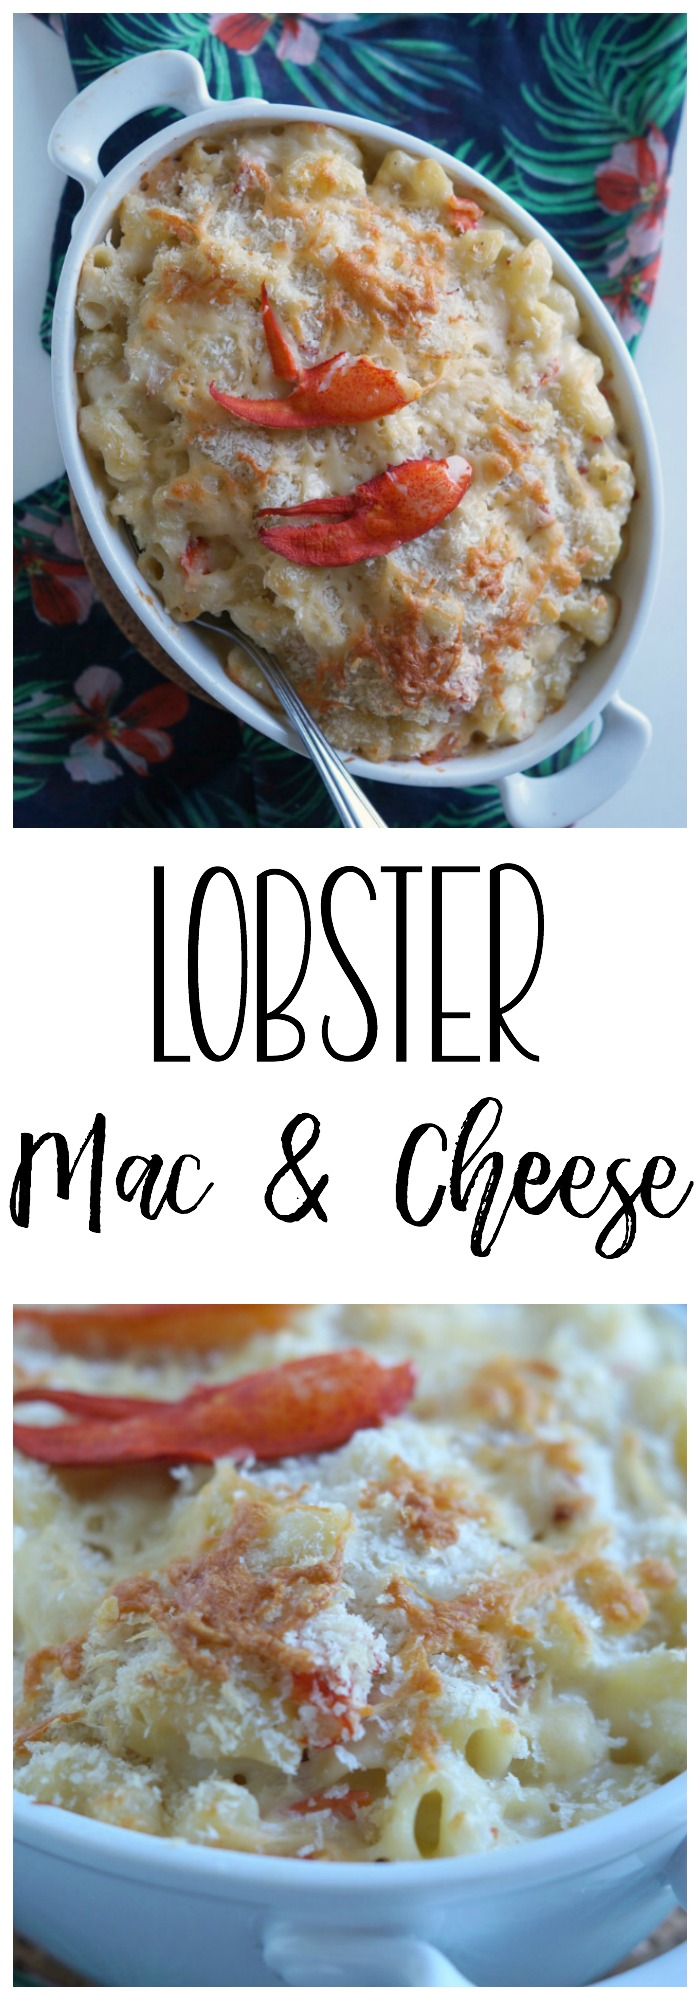 This creamy and delicious Lobster Mac and Cheese is fancy enough for the weekend, but you'll want to serve it on weeknights. AD